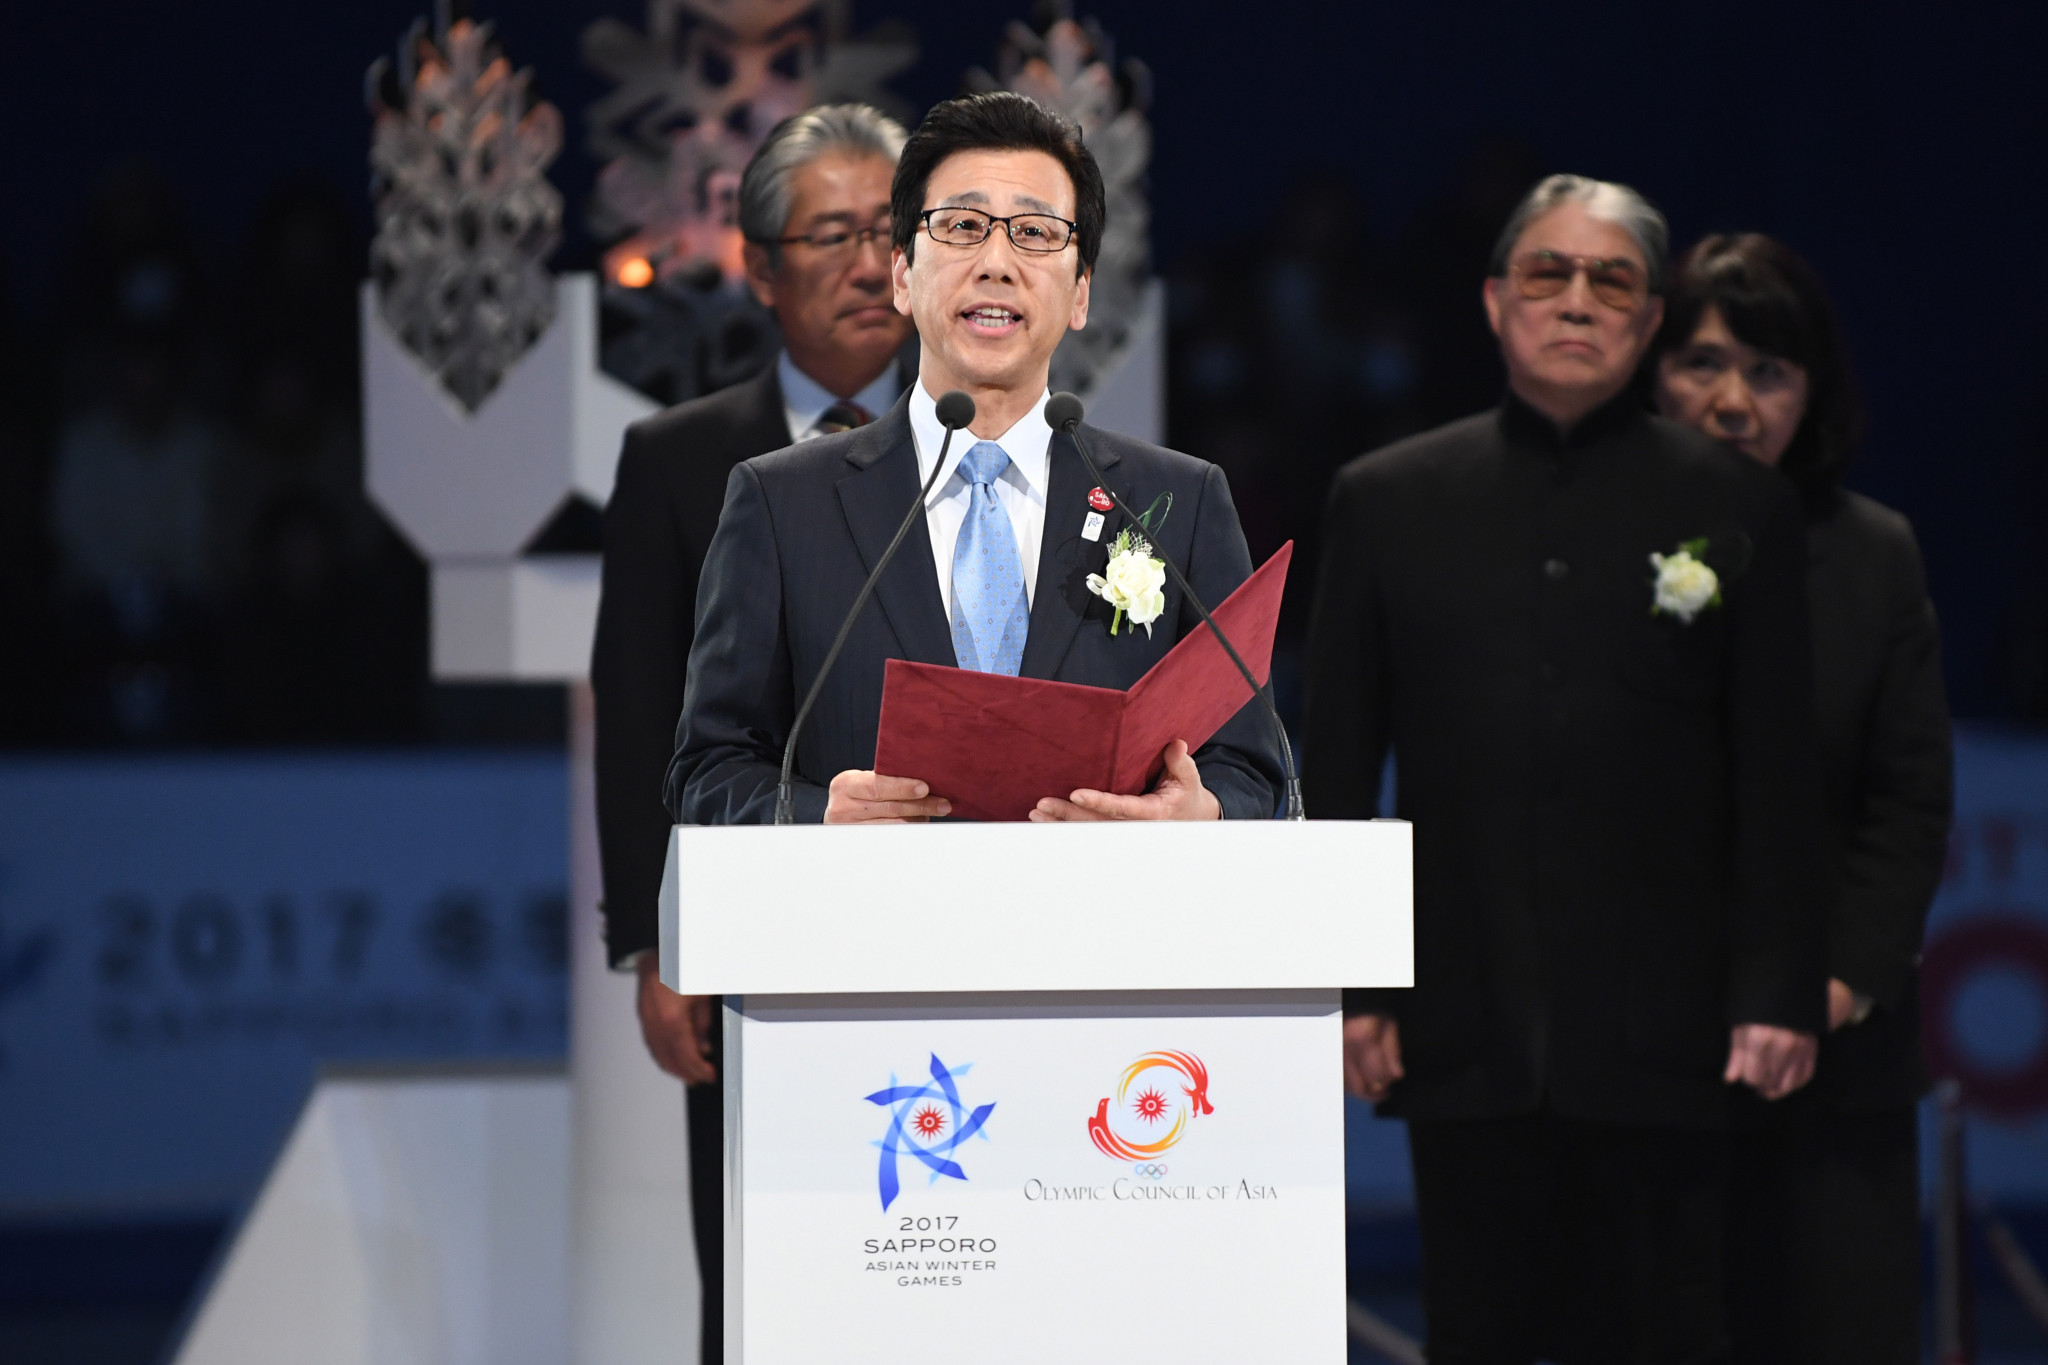 Sapporo Mayor Katsuhiro Akimoto pictured speaking at the Closing Ceremony of last year's Asian Winter Games ©Getty Images